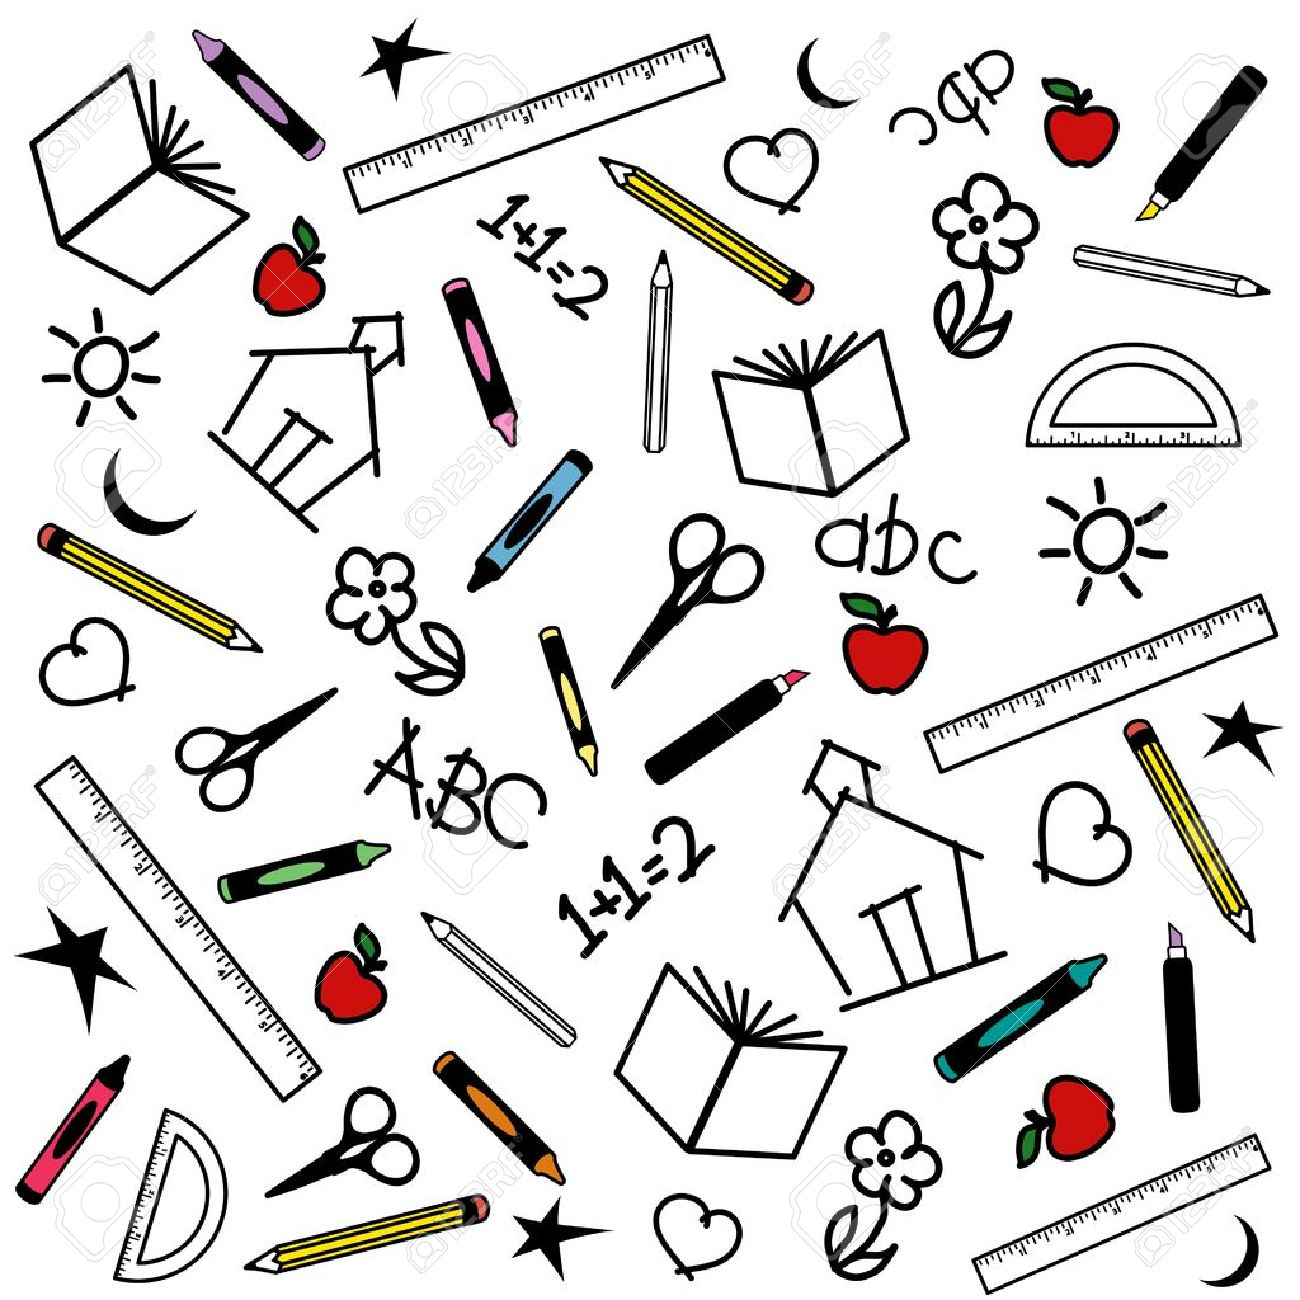 Blackboard Background for back to school, scrapbook, arts, crafts projects, with chalk drawings of apples, schoolhouses, books, rulers, pencils, pens, markers, protractors, crayons, scissors, ABCs, math, grade school doodles. Stock Vector - 11170834